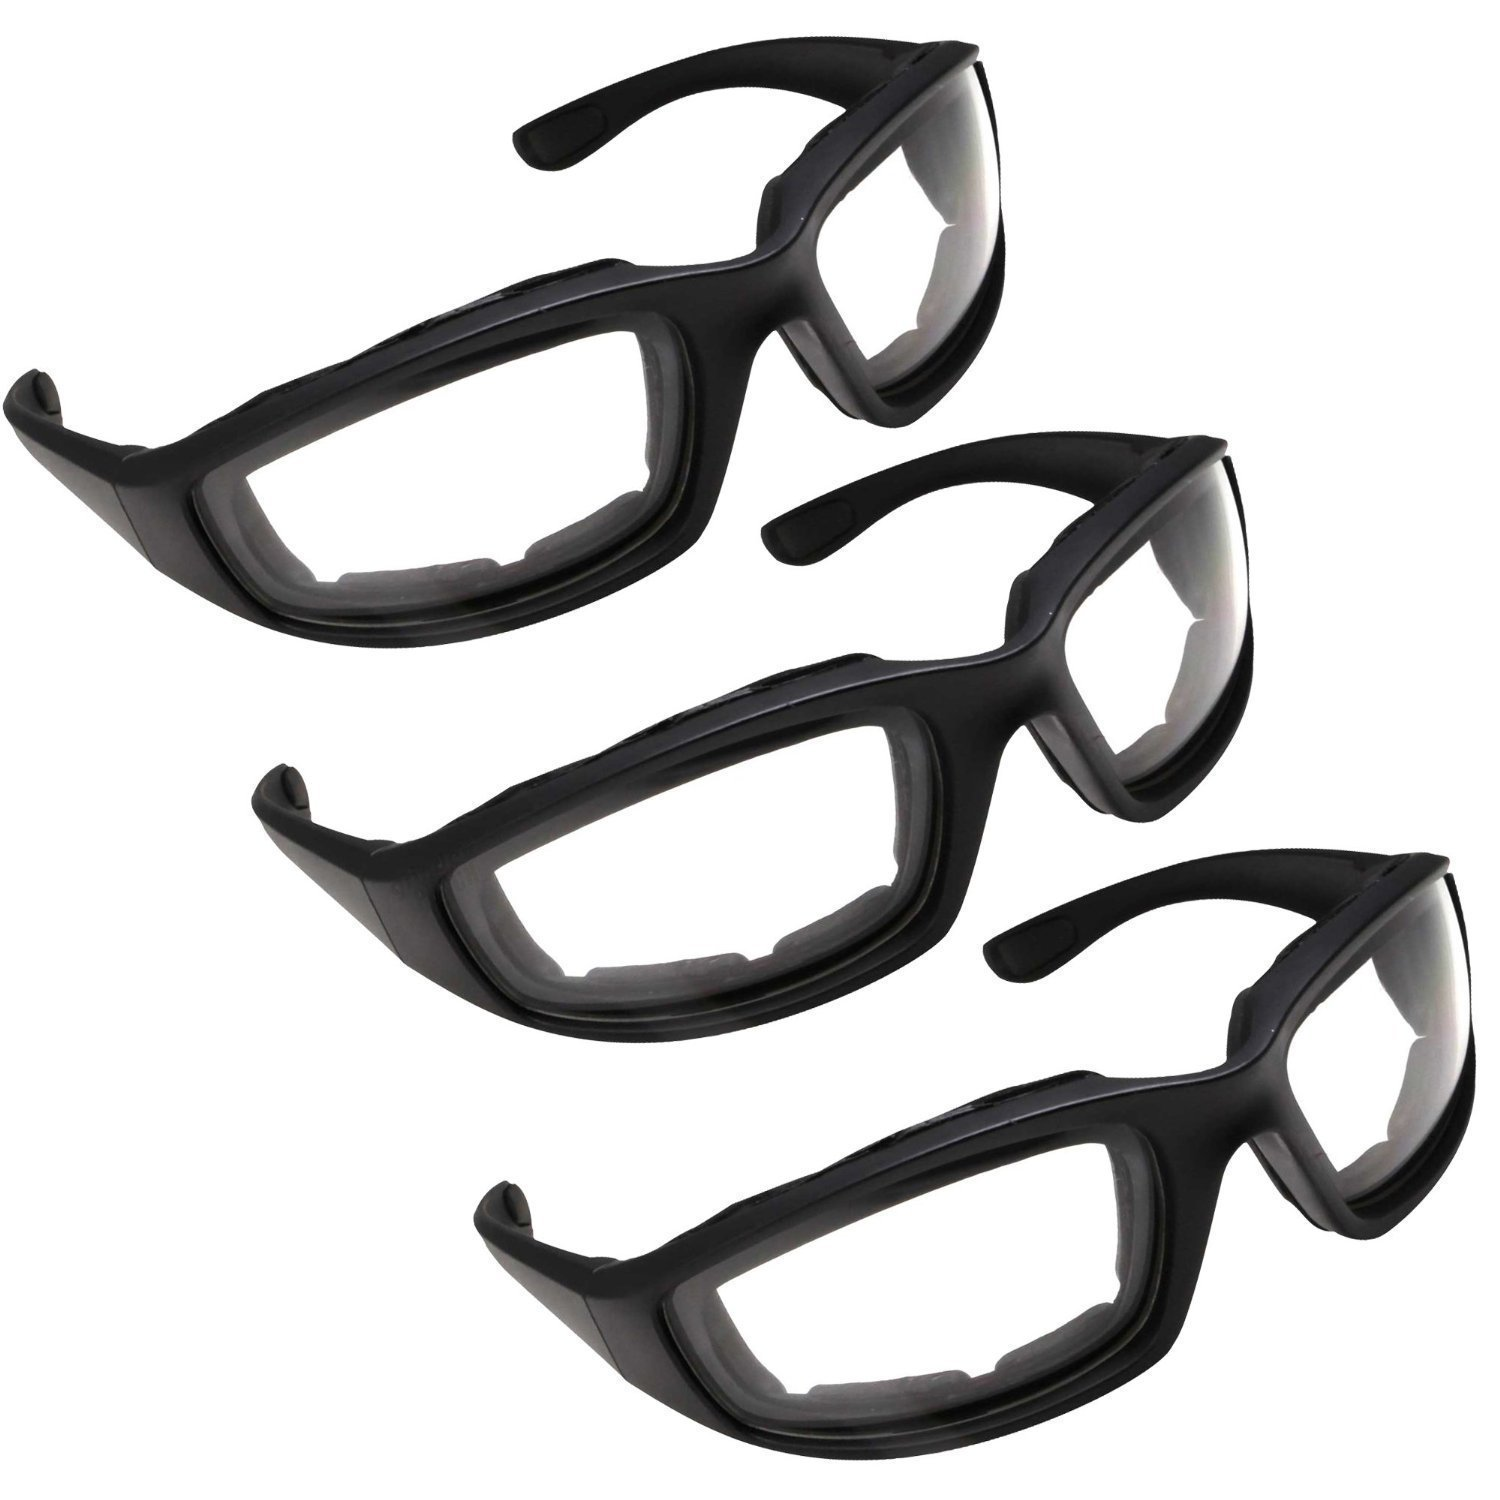 ZZM 3 Pair Motorcycle Riding Glasses Clear 4336330438